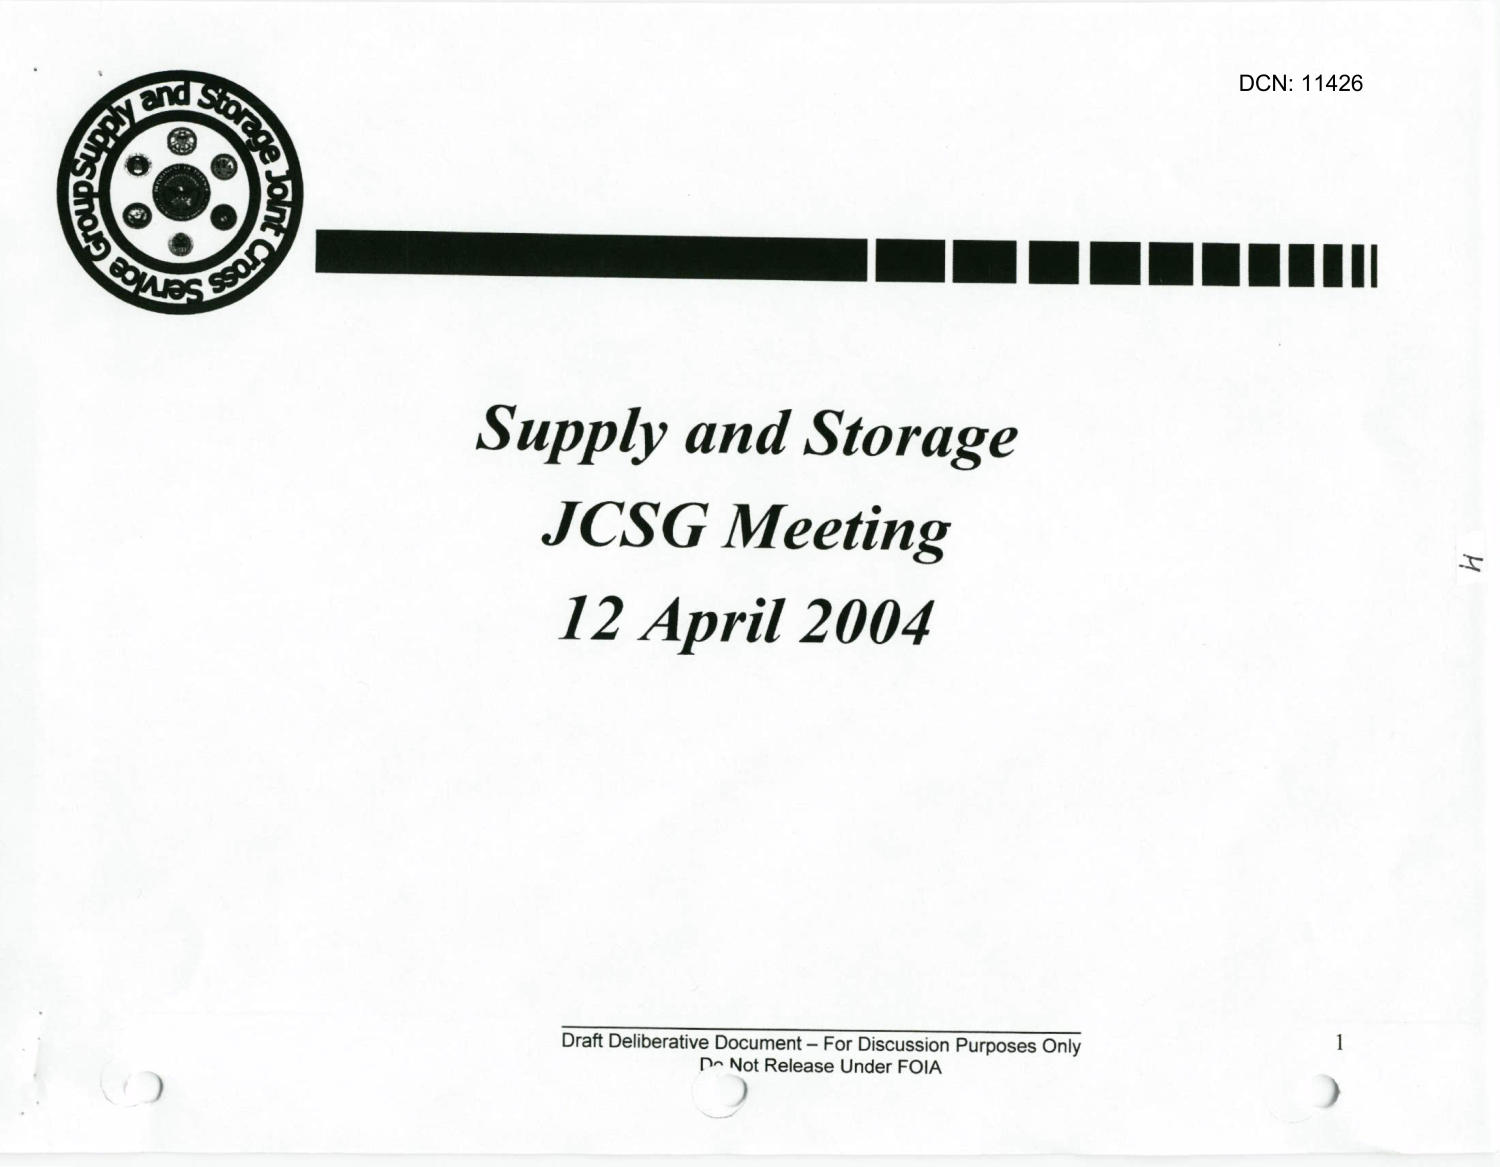 S&S JCSG 12 Minutes 12 Apr 04                                                                                                      [Sequence #]: 4 of 14